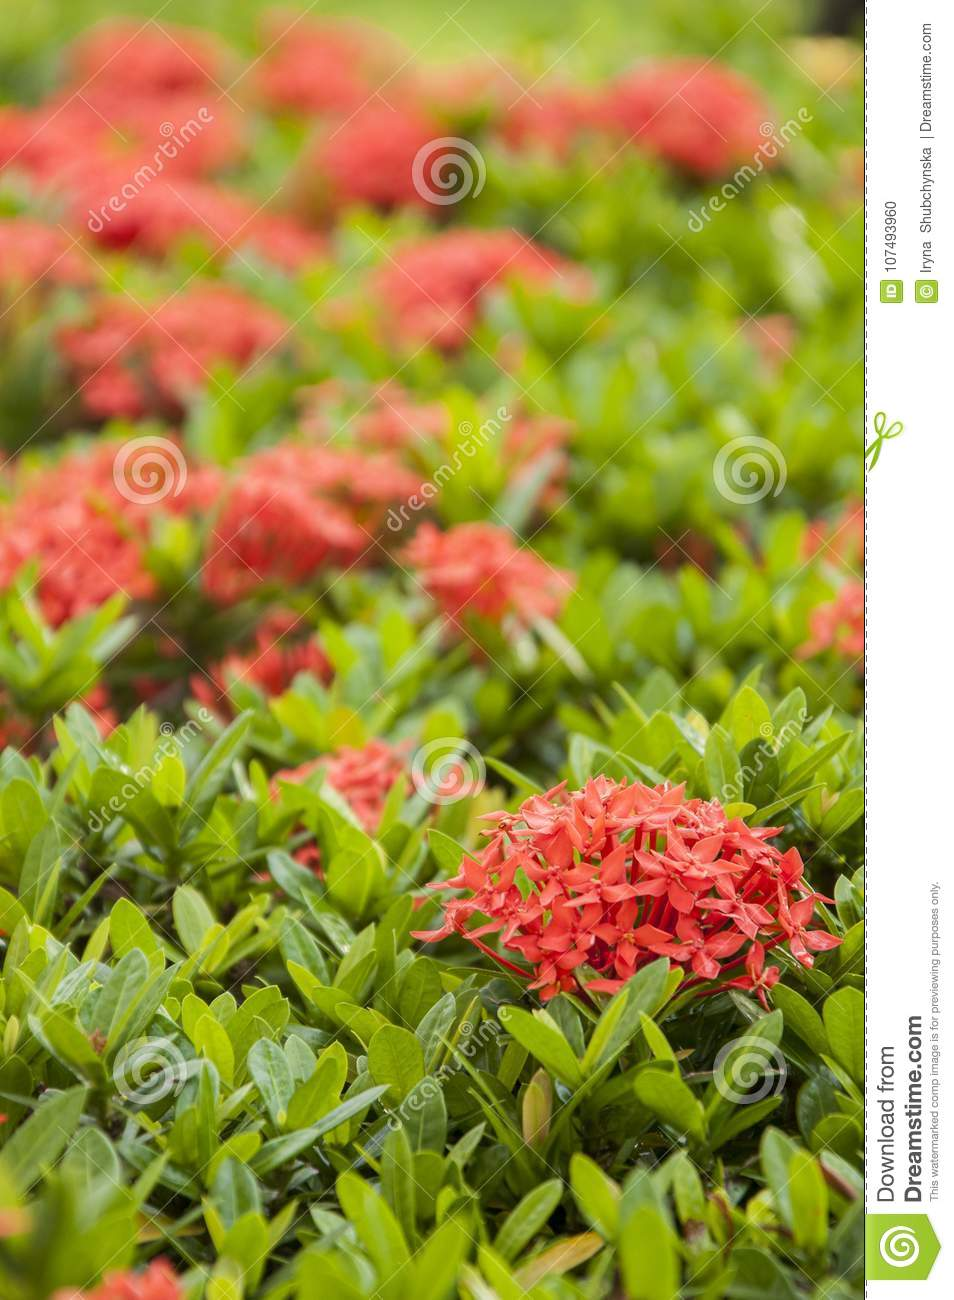 Fresh Green Small Leaves Of A Tropical Plant With Pink Flowers